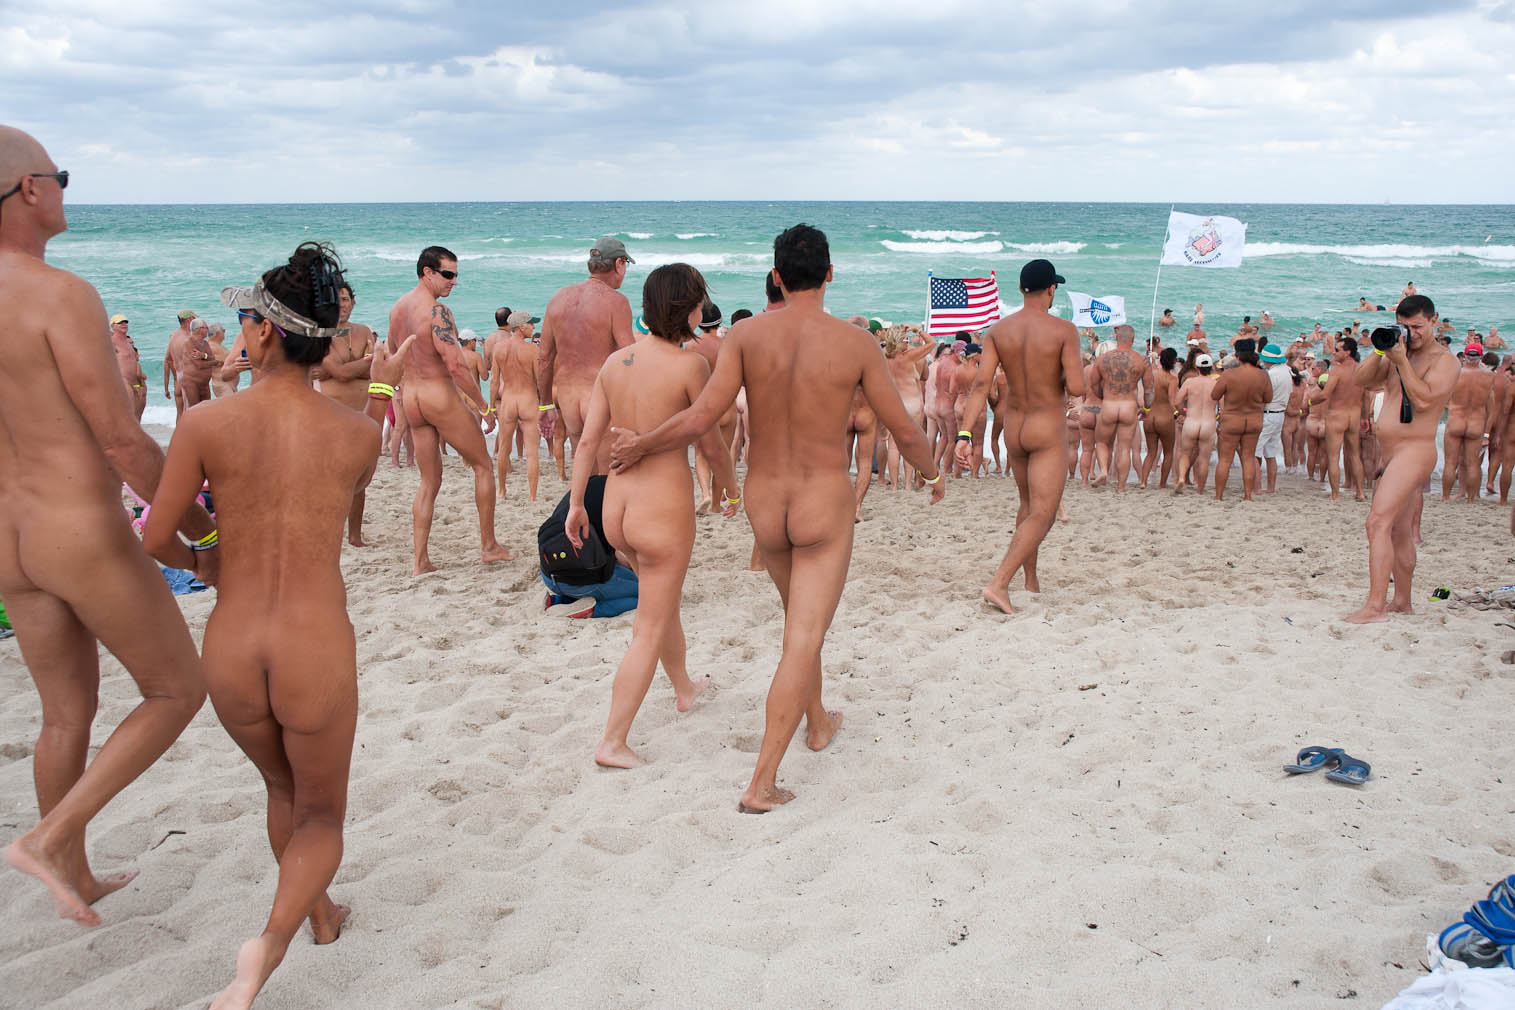 Gay nude beach europe-4552